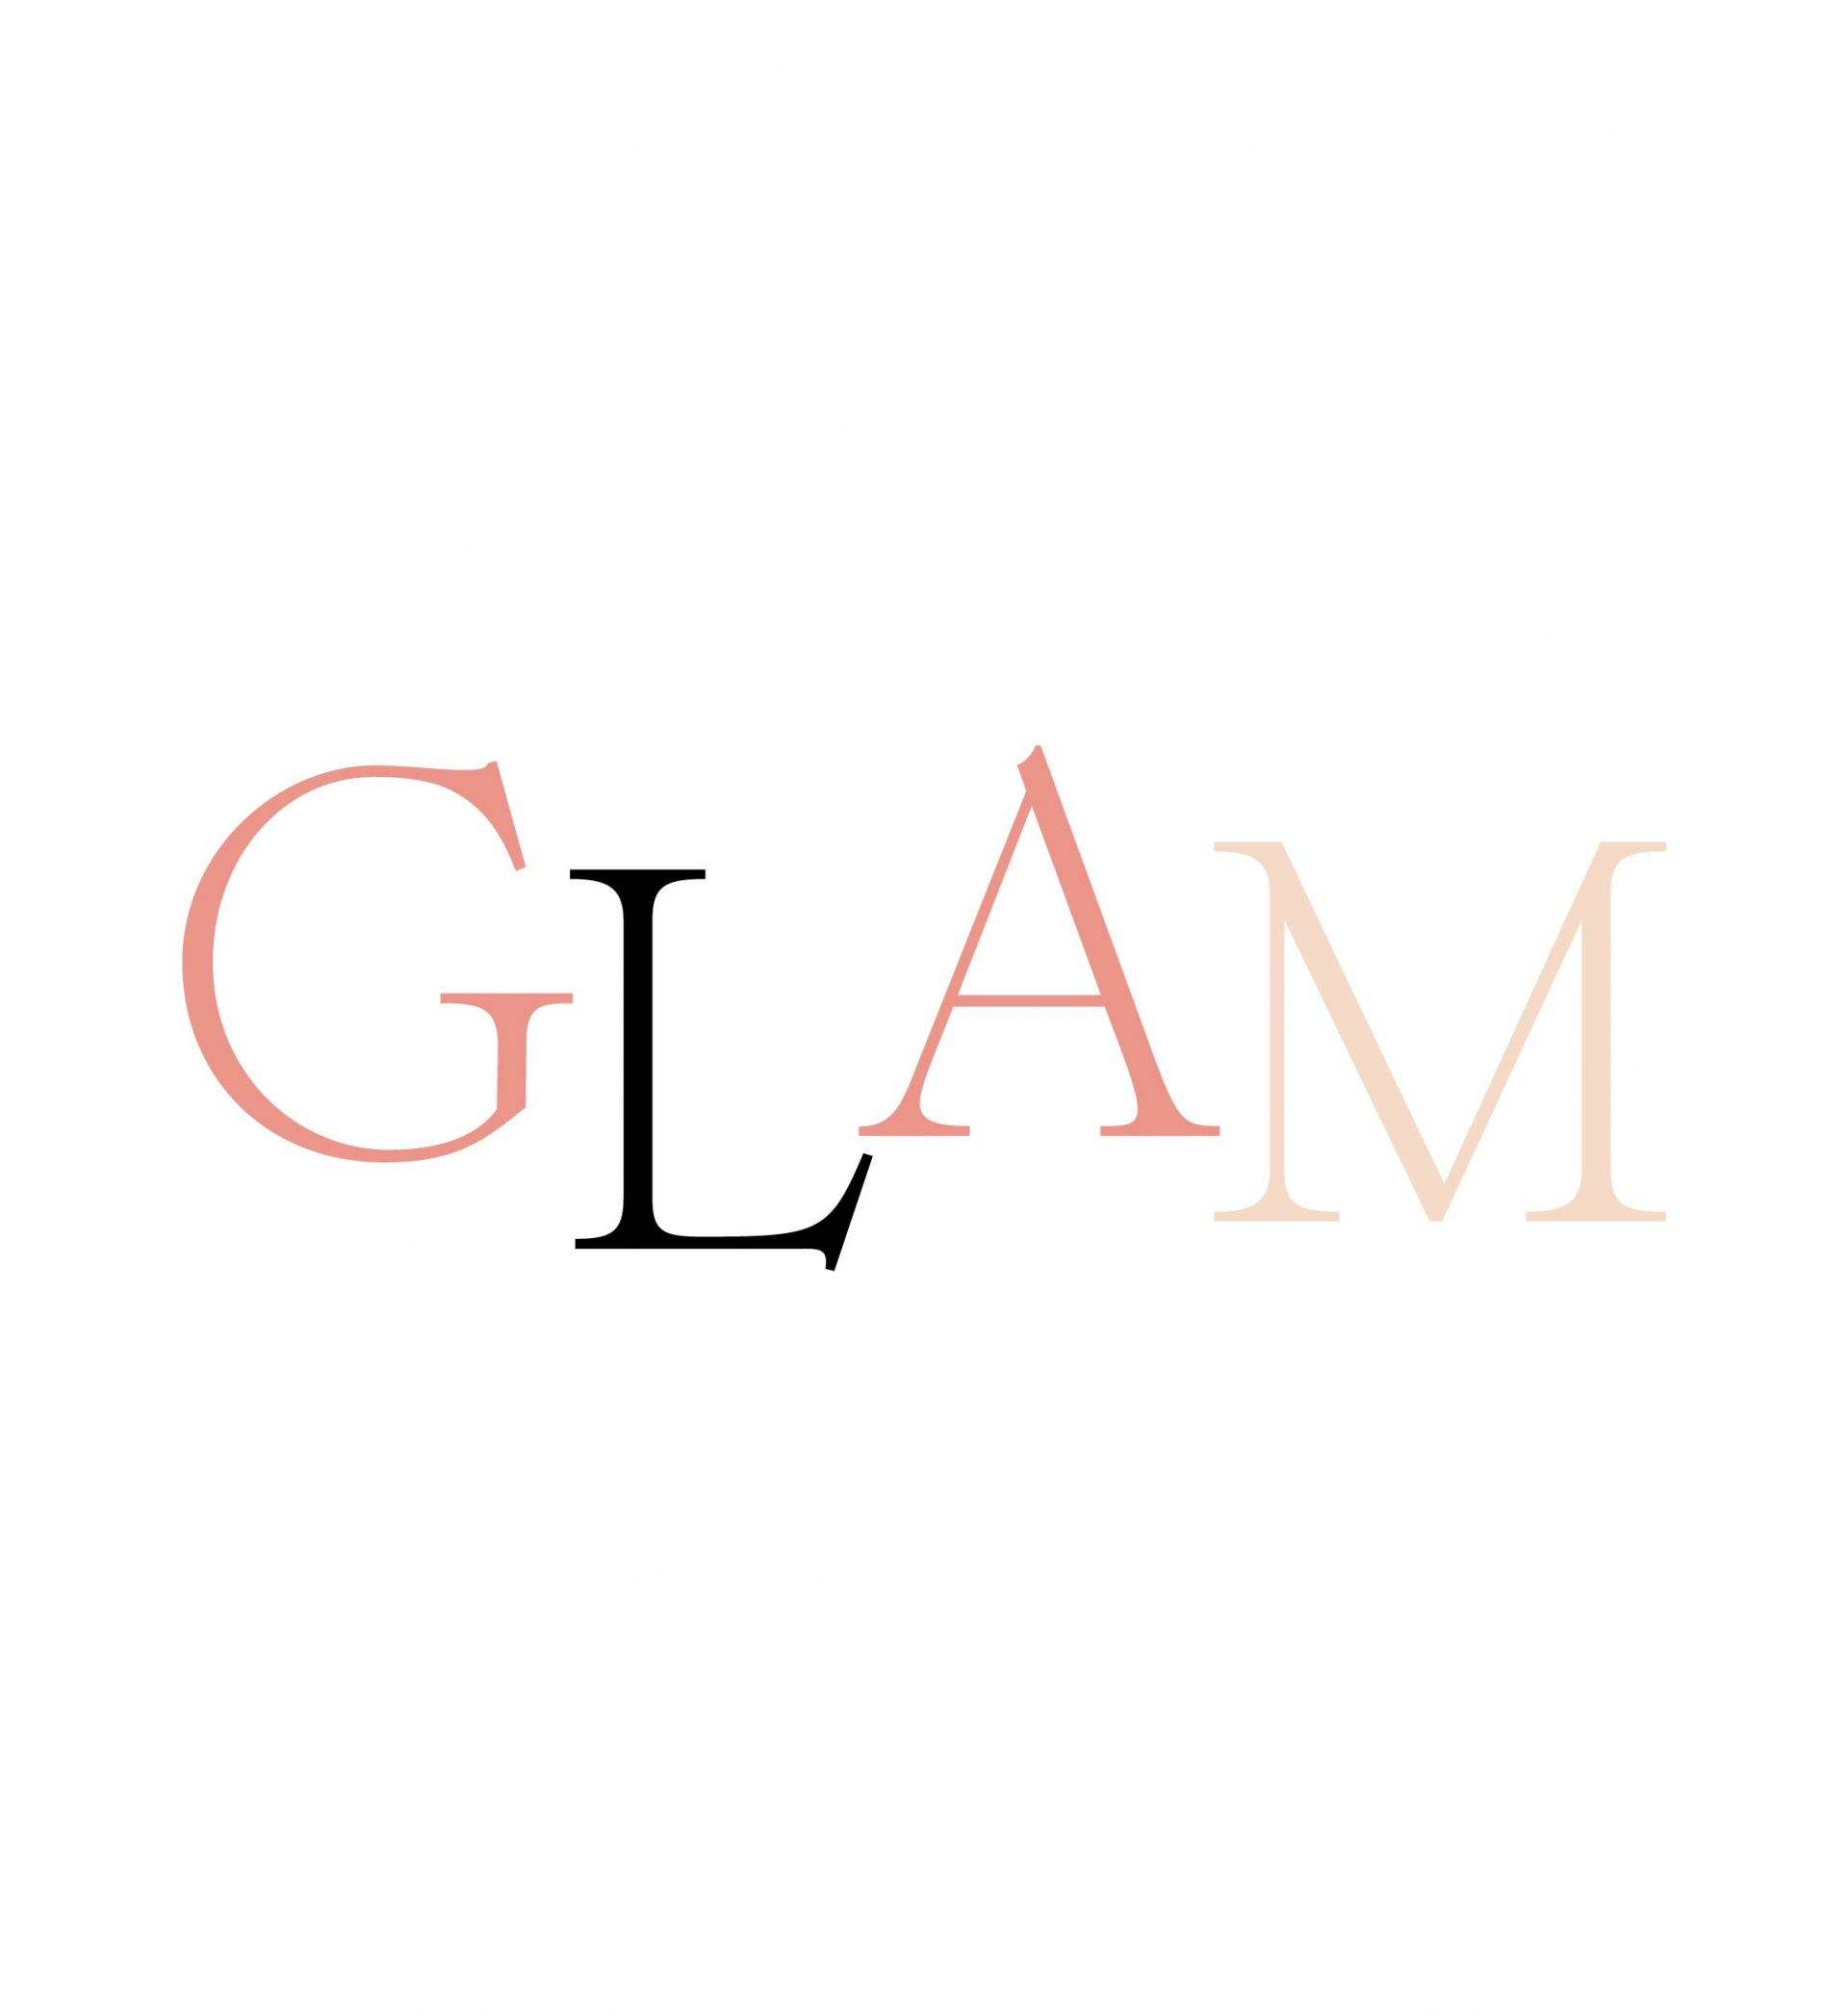 What is the glam style?